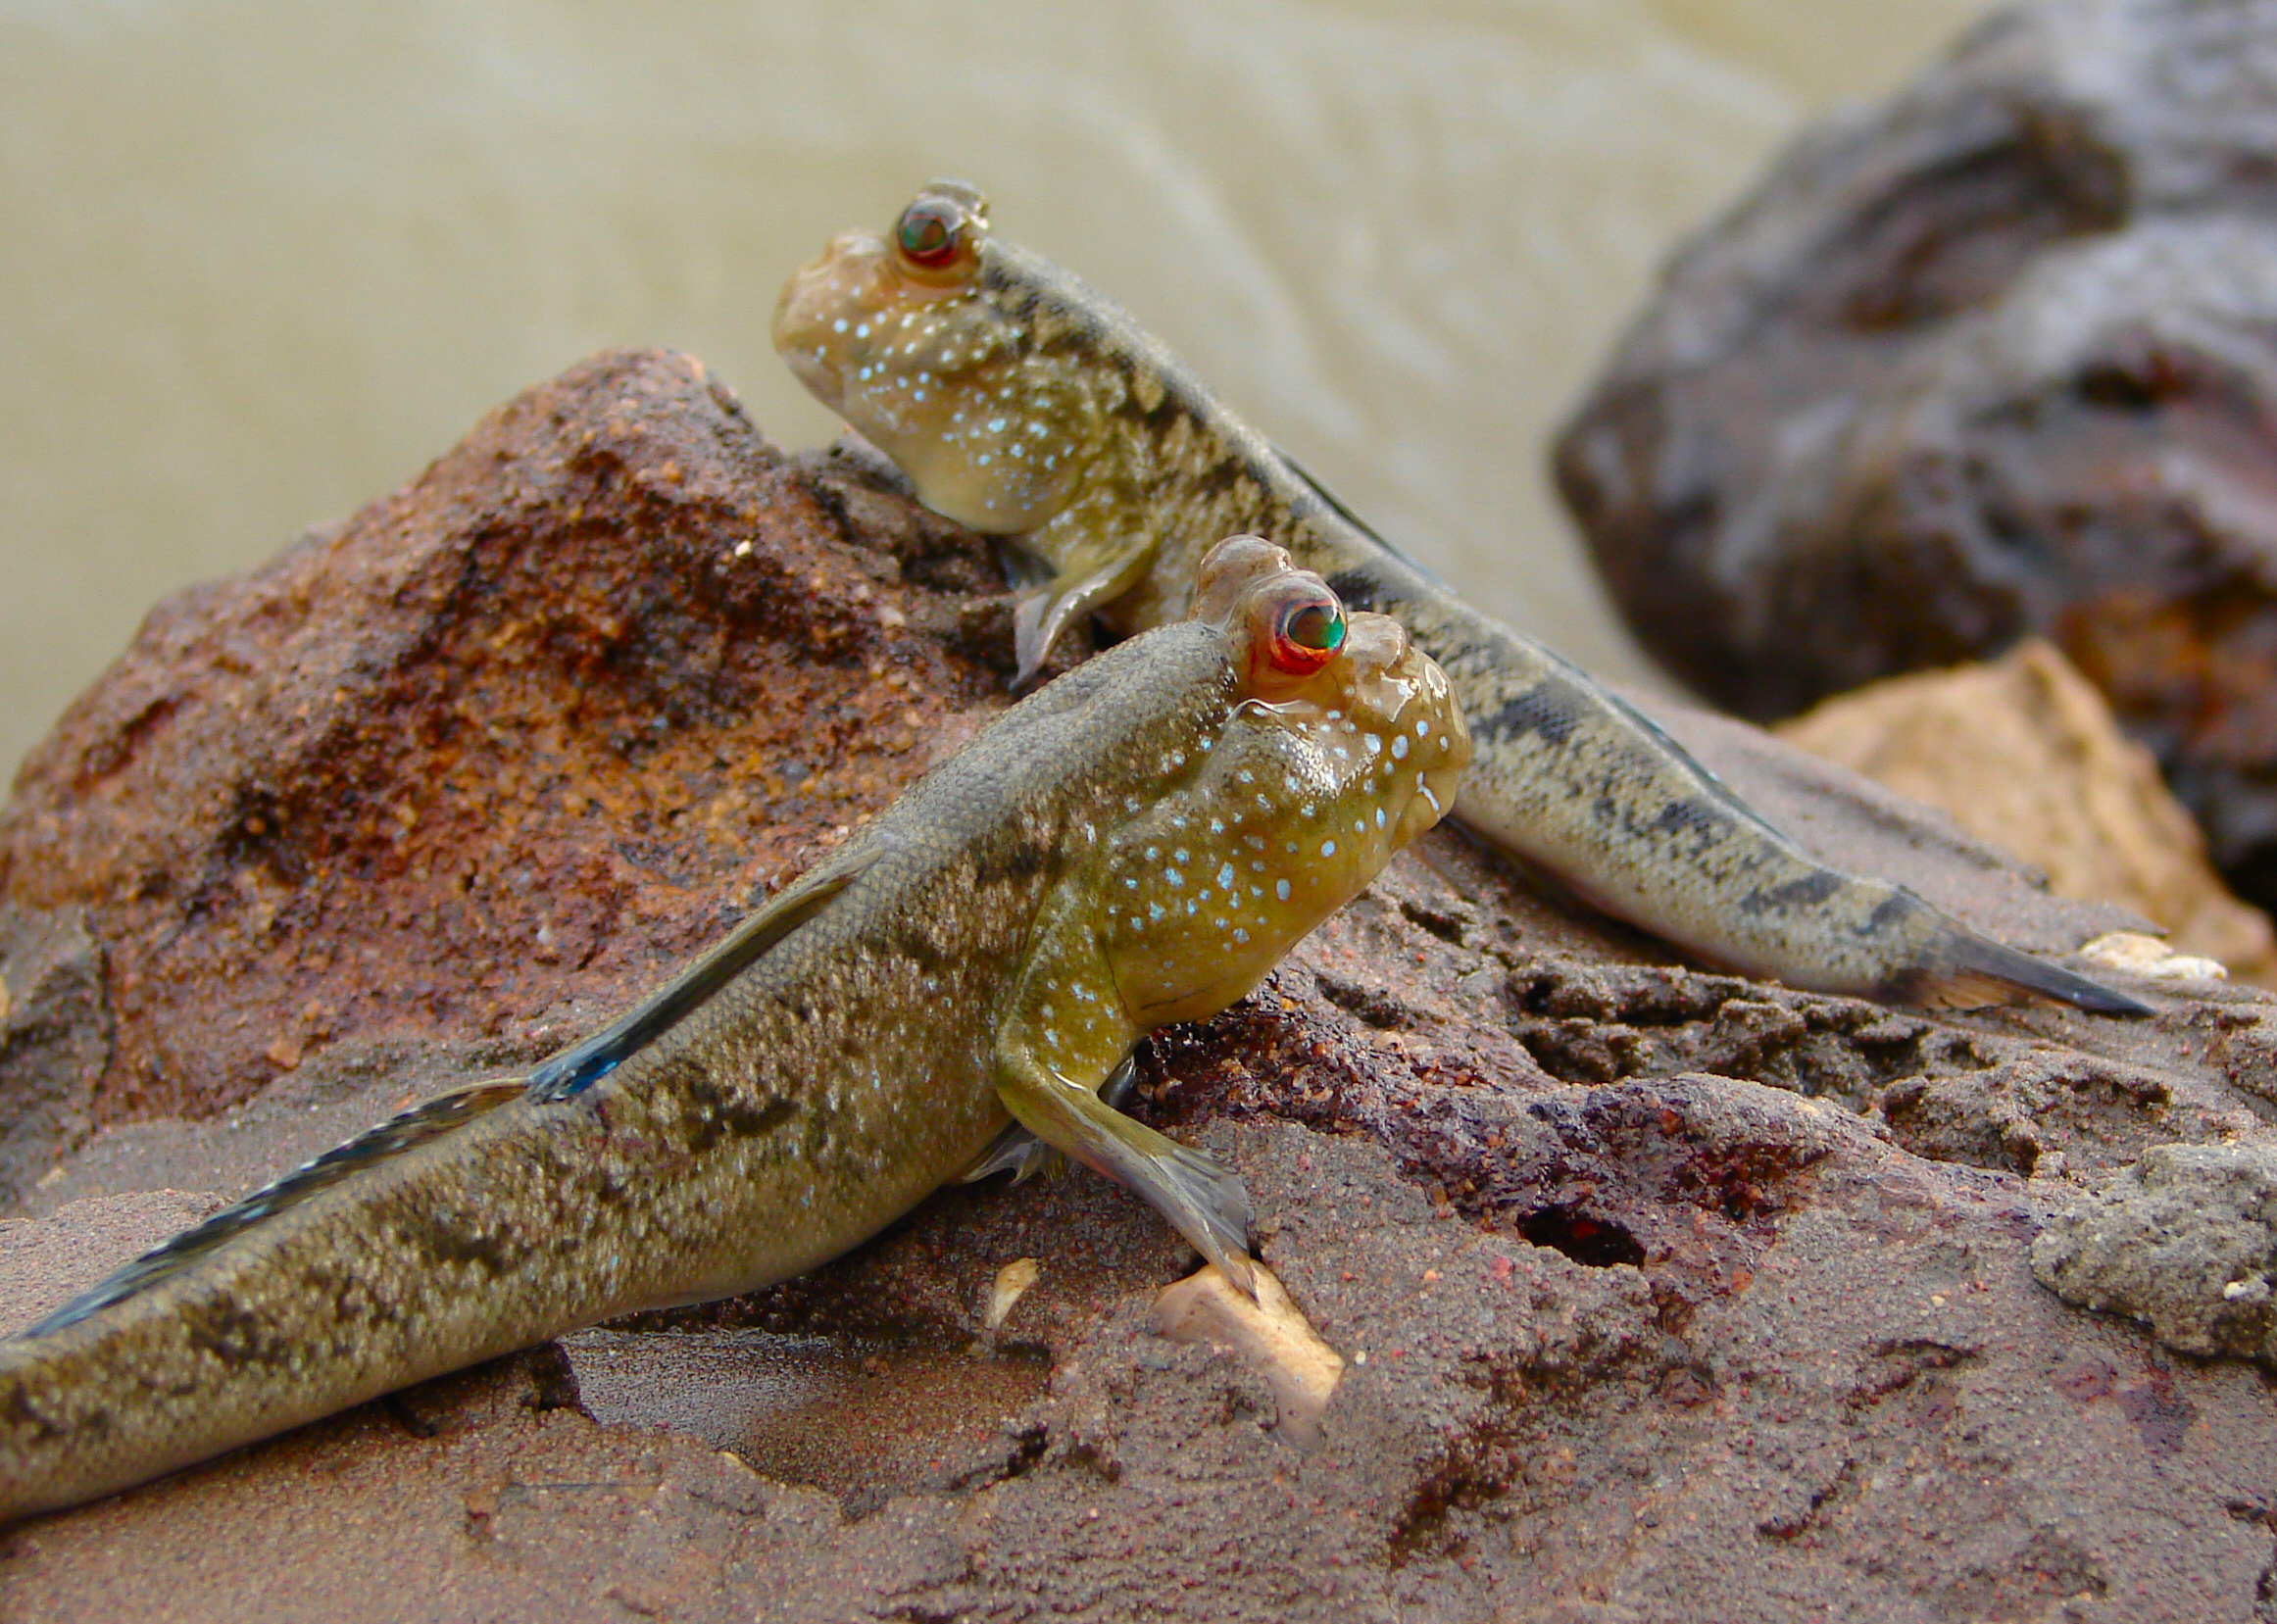 Mudskipper wallpaper